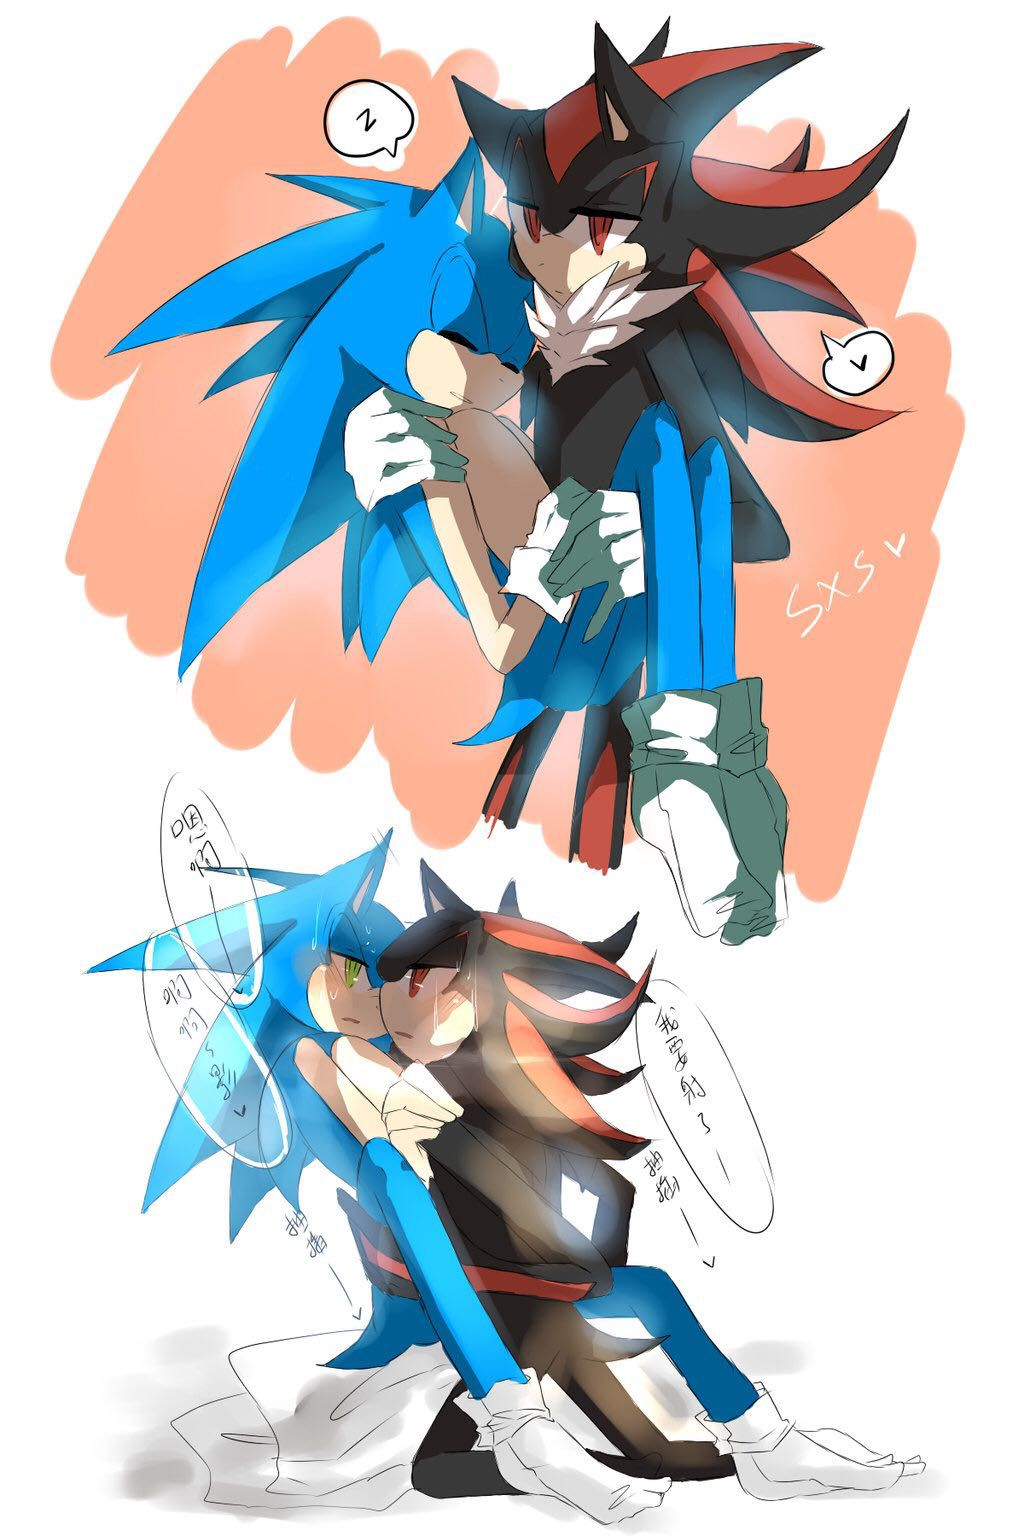 Sonic Lemon 2 - Sonic X Shadow - Wattpad